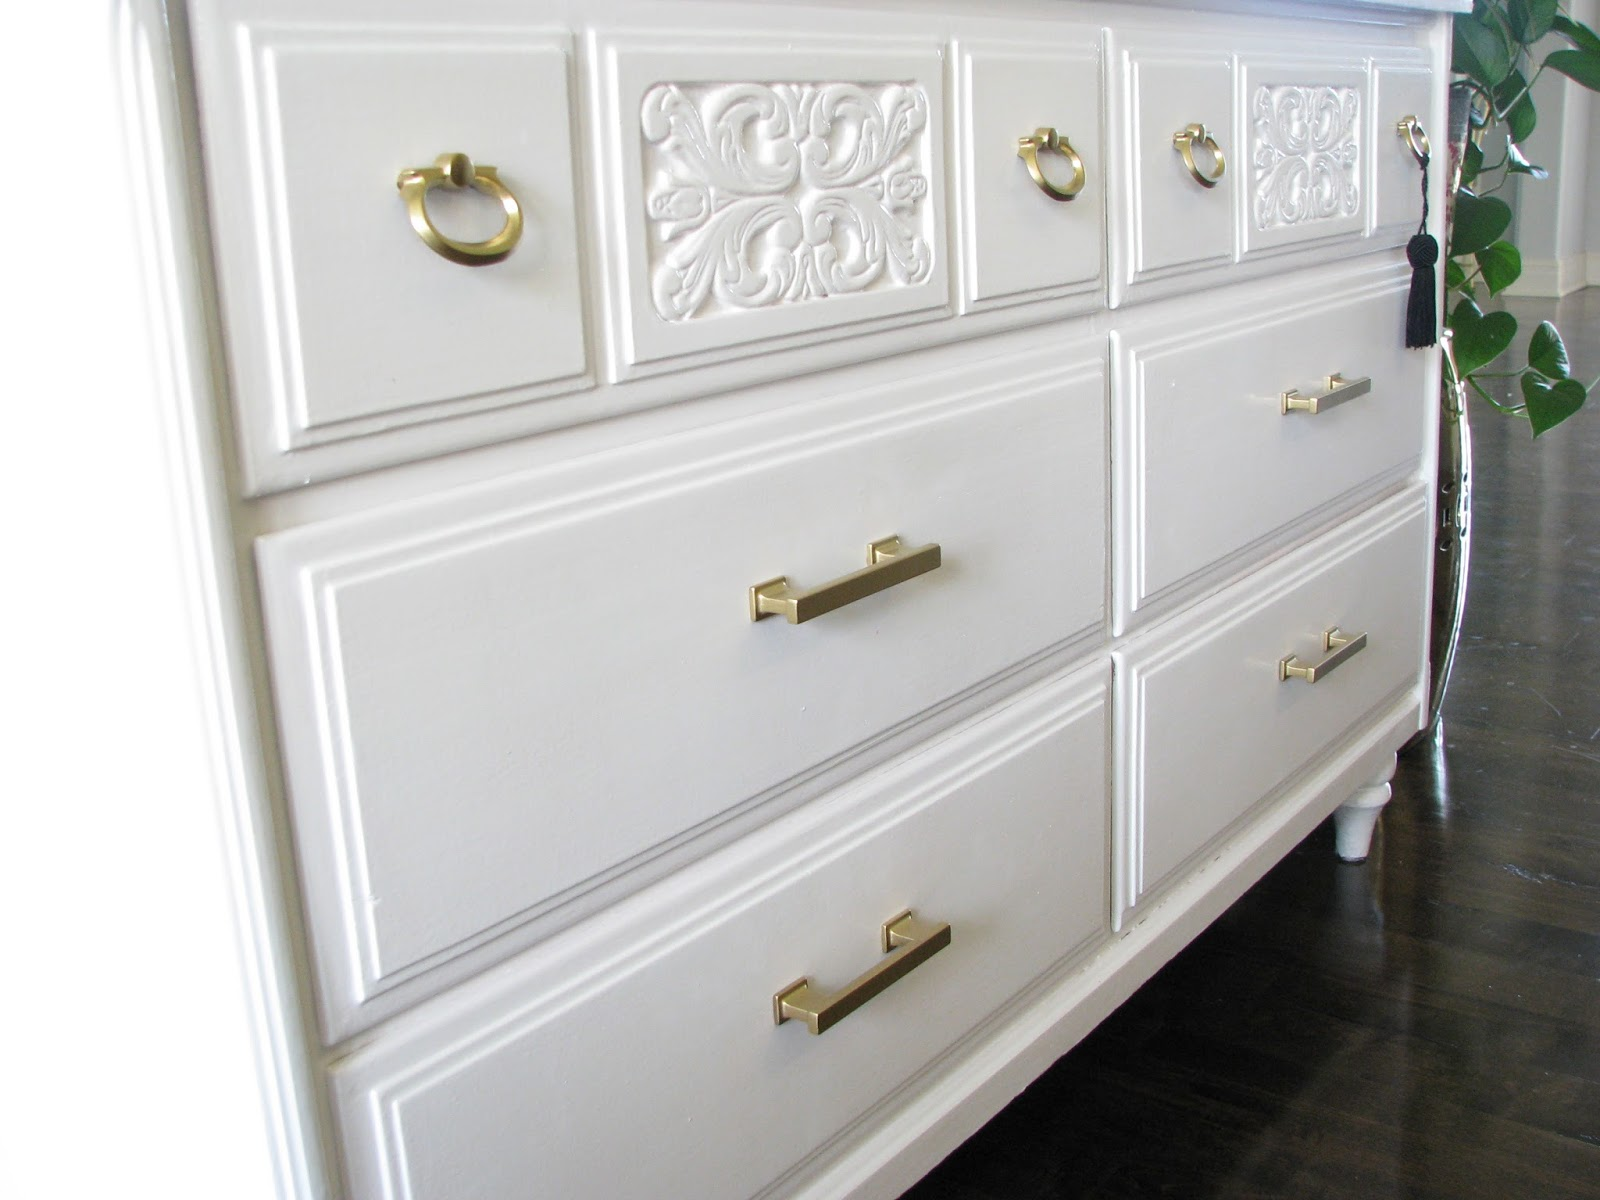 Picture of: Gold Dresser Handles Decorative